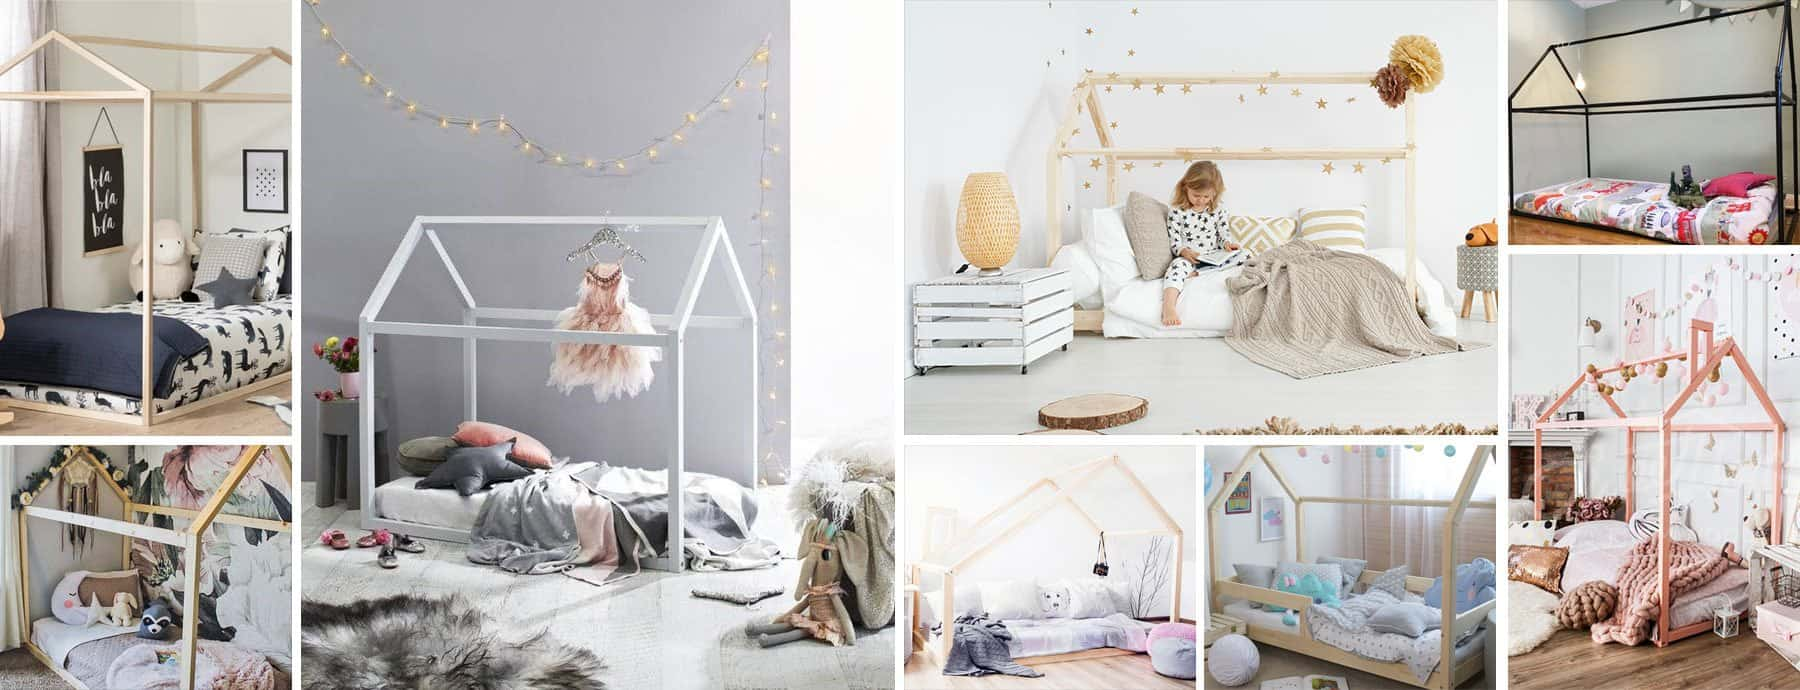 24 Best House Beds For Kids The Online Buying Guide 2020 Nursery Kid S Room Decor Ideas My Sleepy Monkey